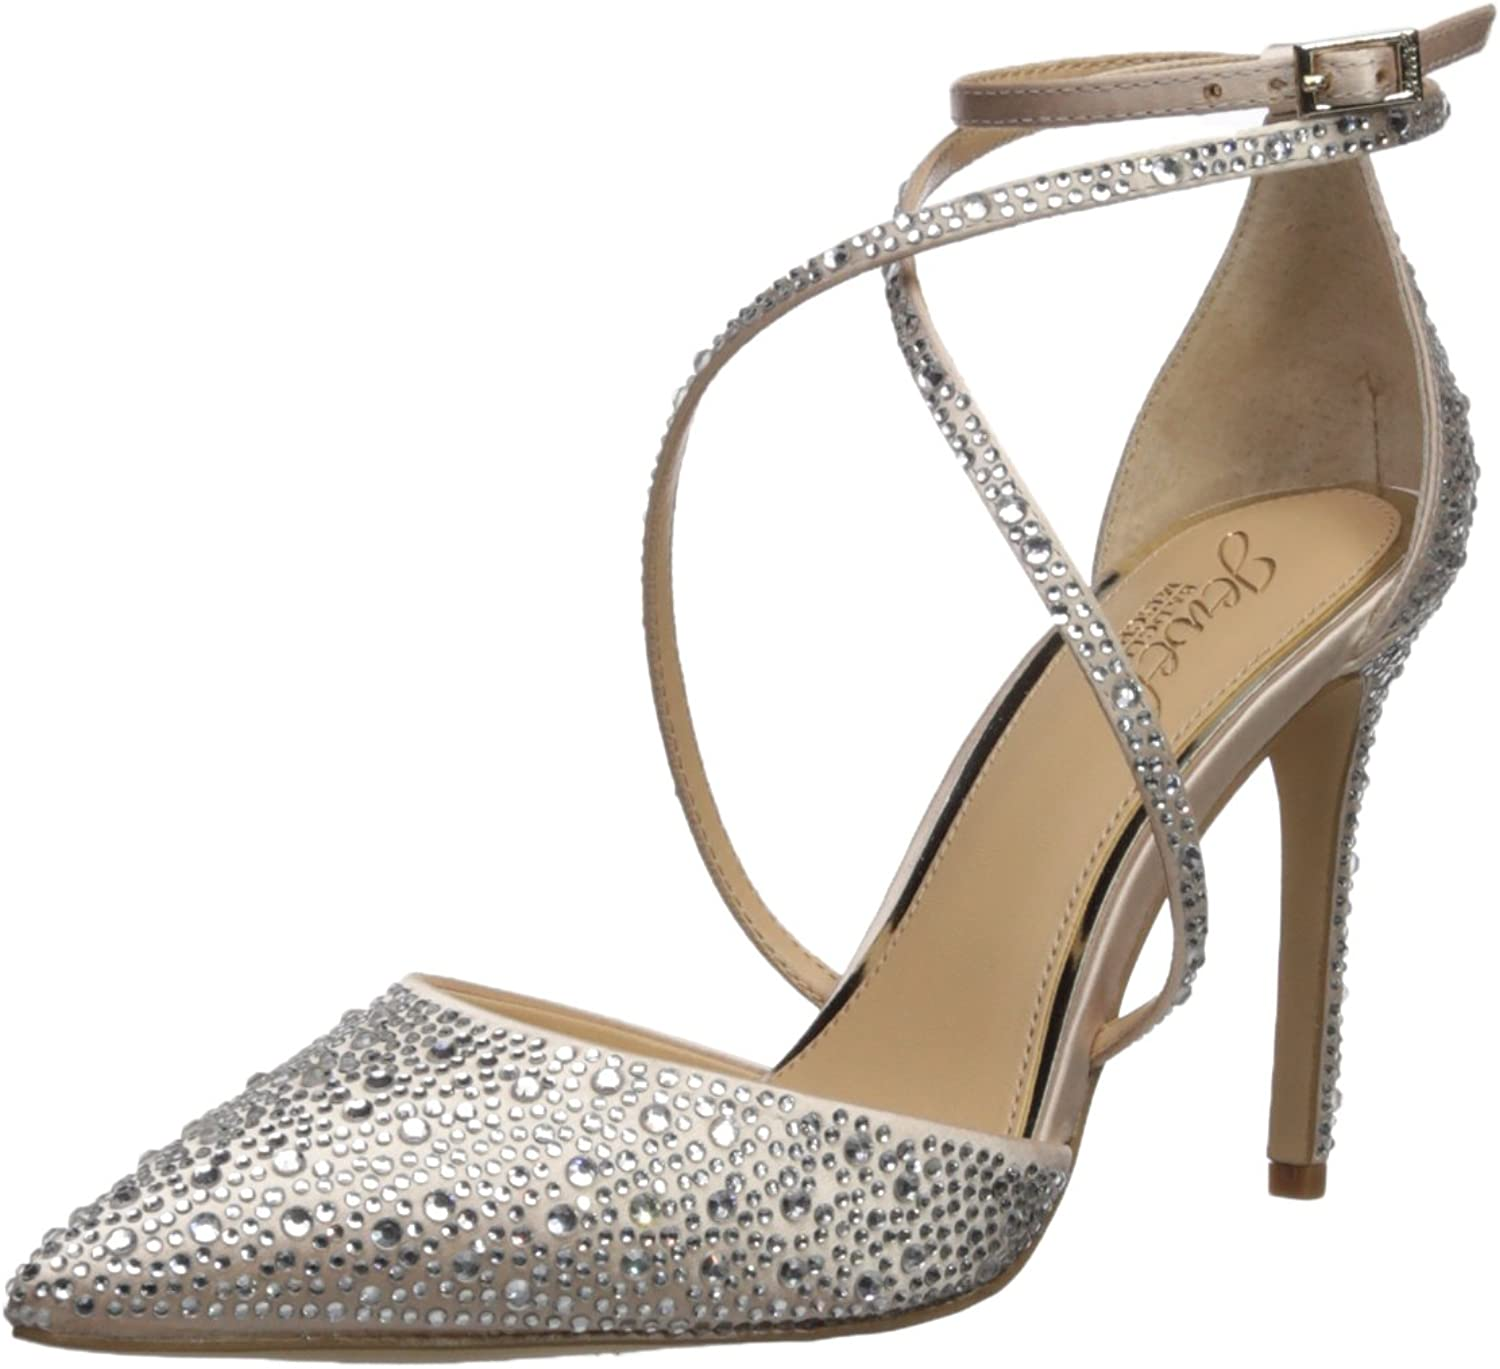 Badgley Mischka Womens Tanya Pump